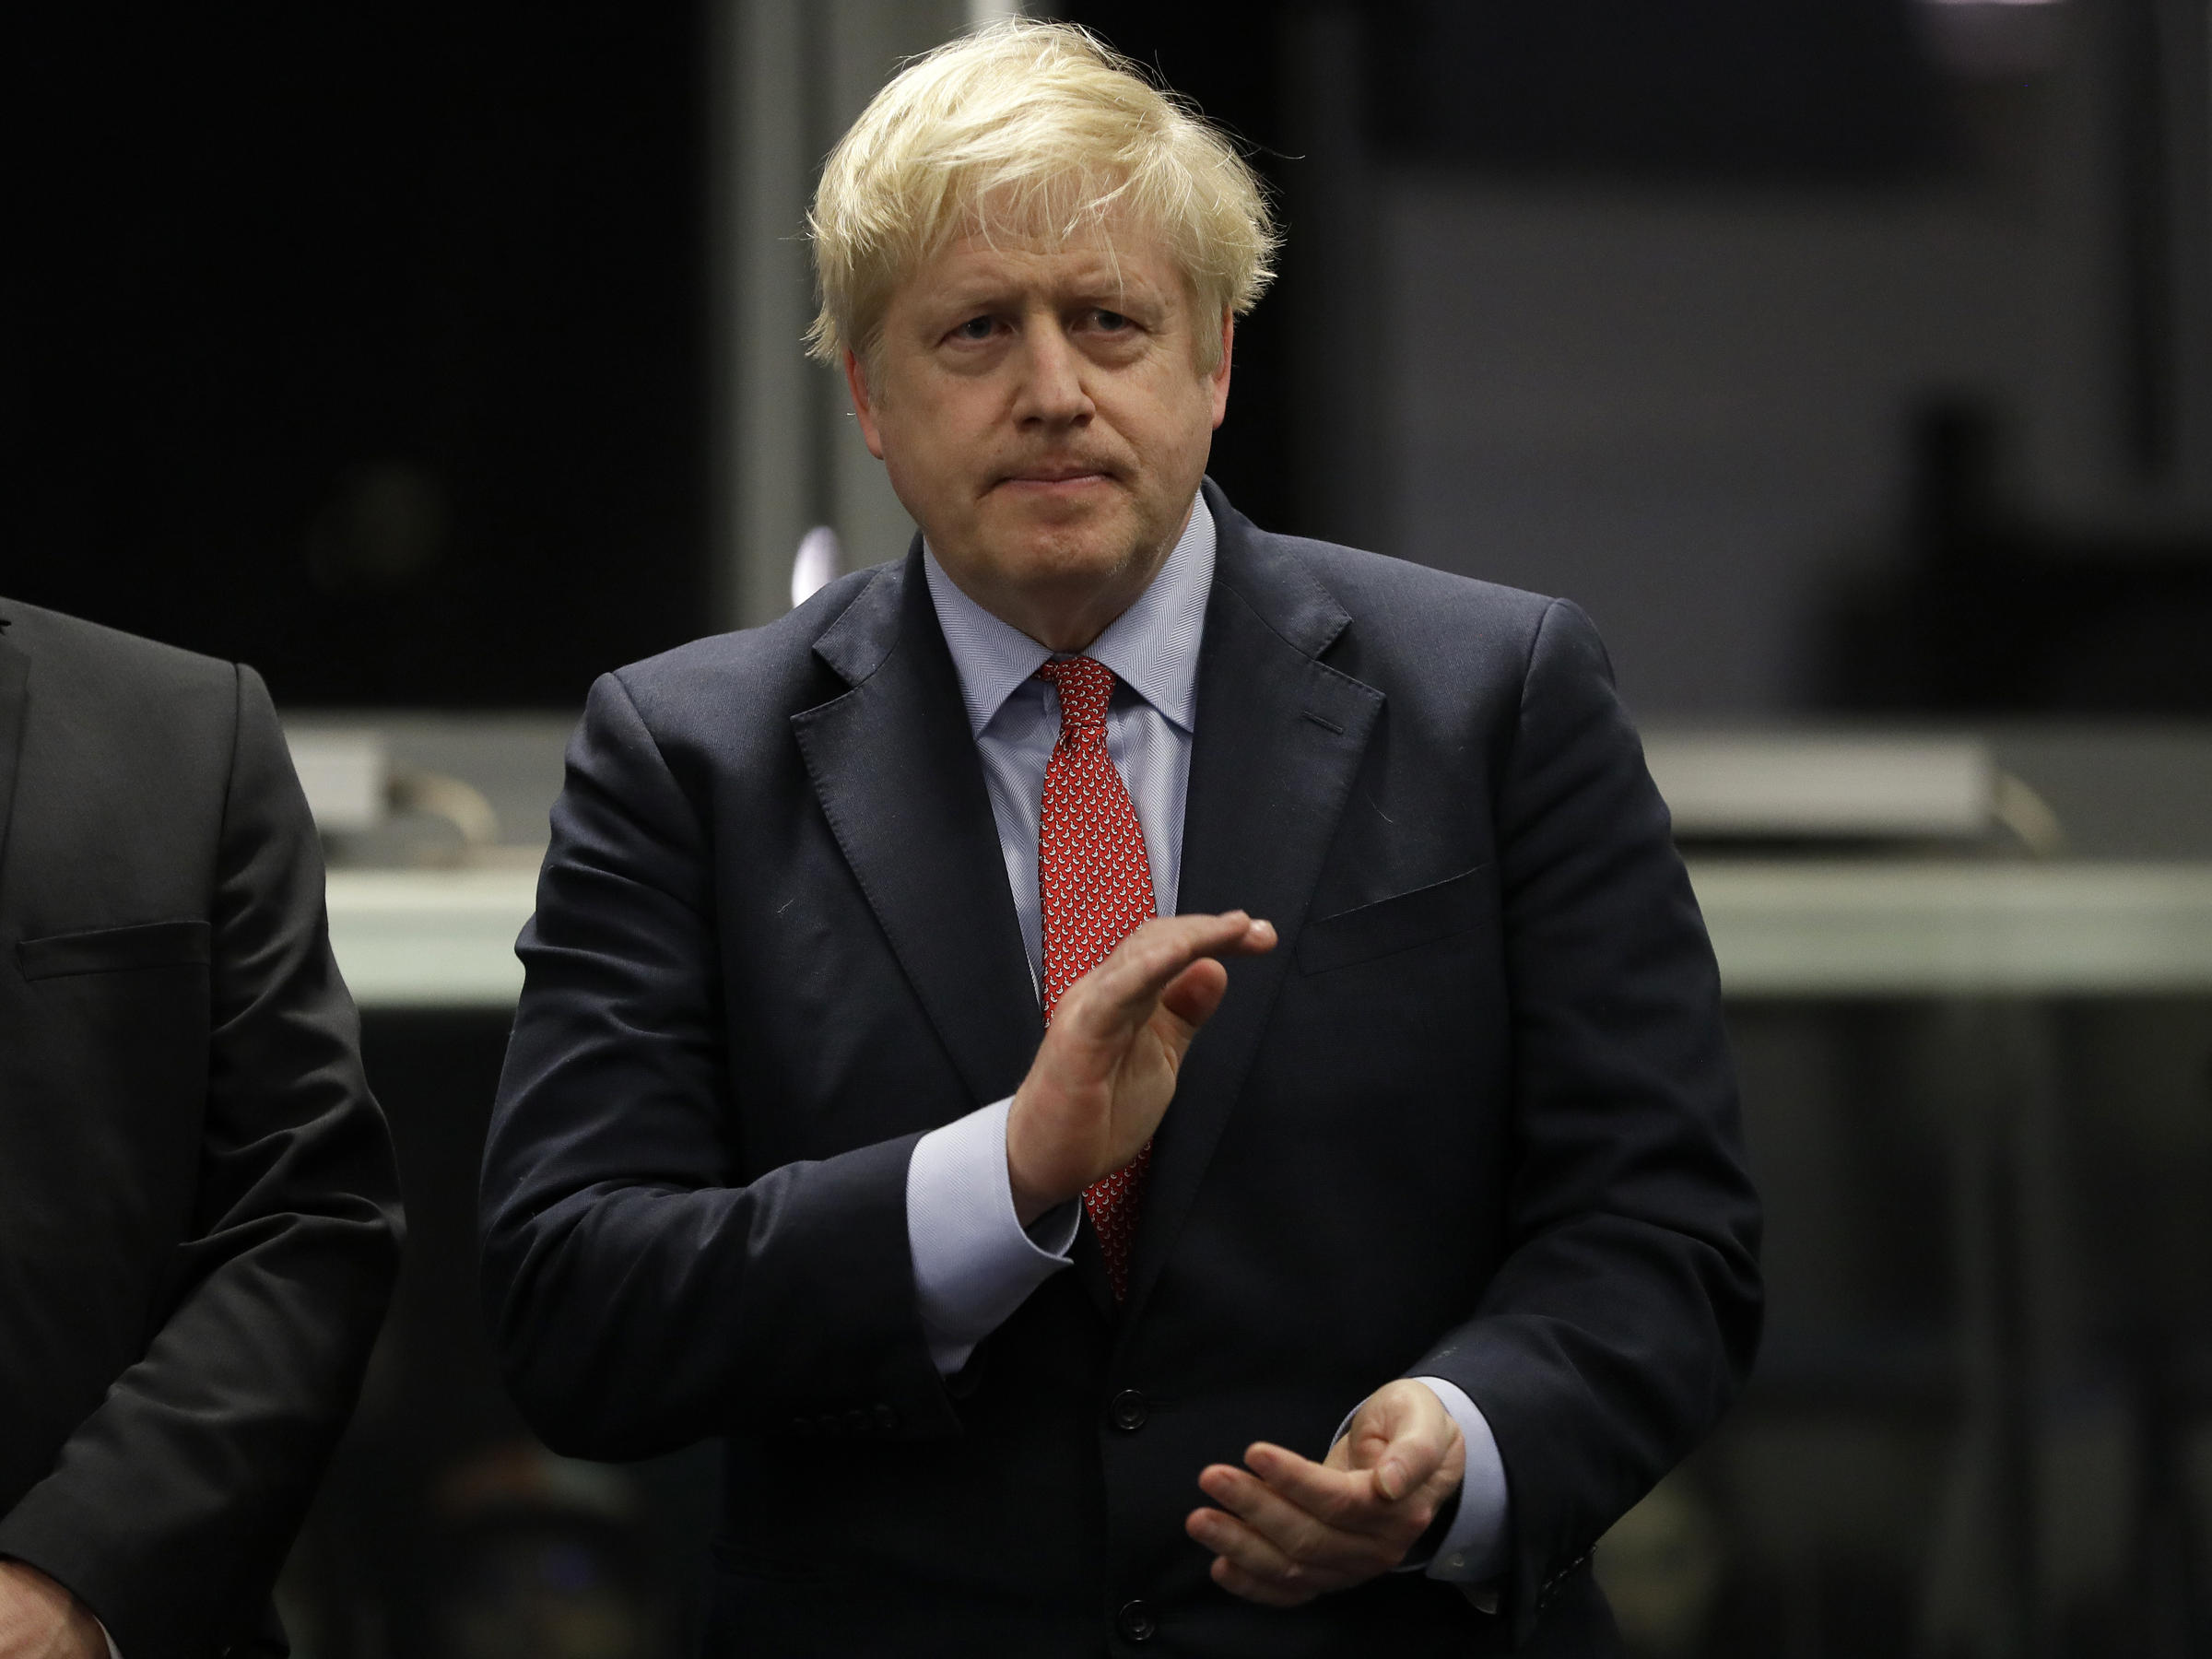 Boris Johnson And Conservative Party Win Large Majority In Parliament